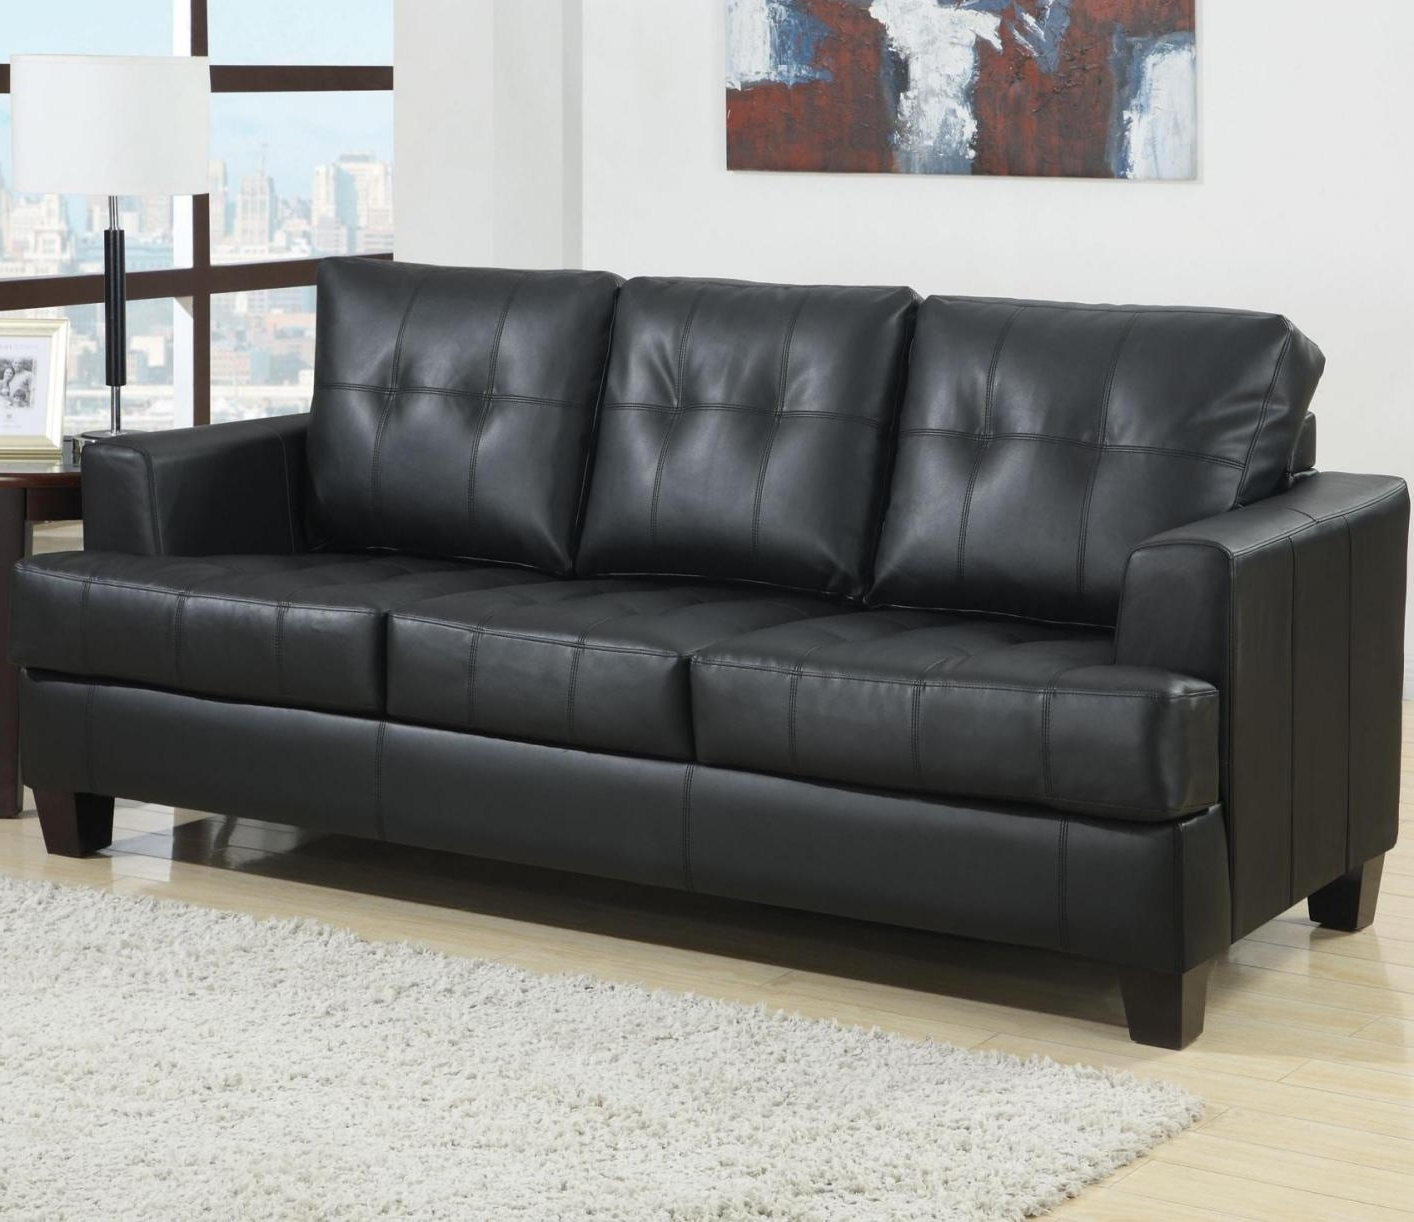 Economax Sectional Sofas In Newest Great Black Sofa Bed 60 On Modern Sofa Inspiration With Black Sofa Bed (View 6 of 20)